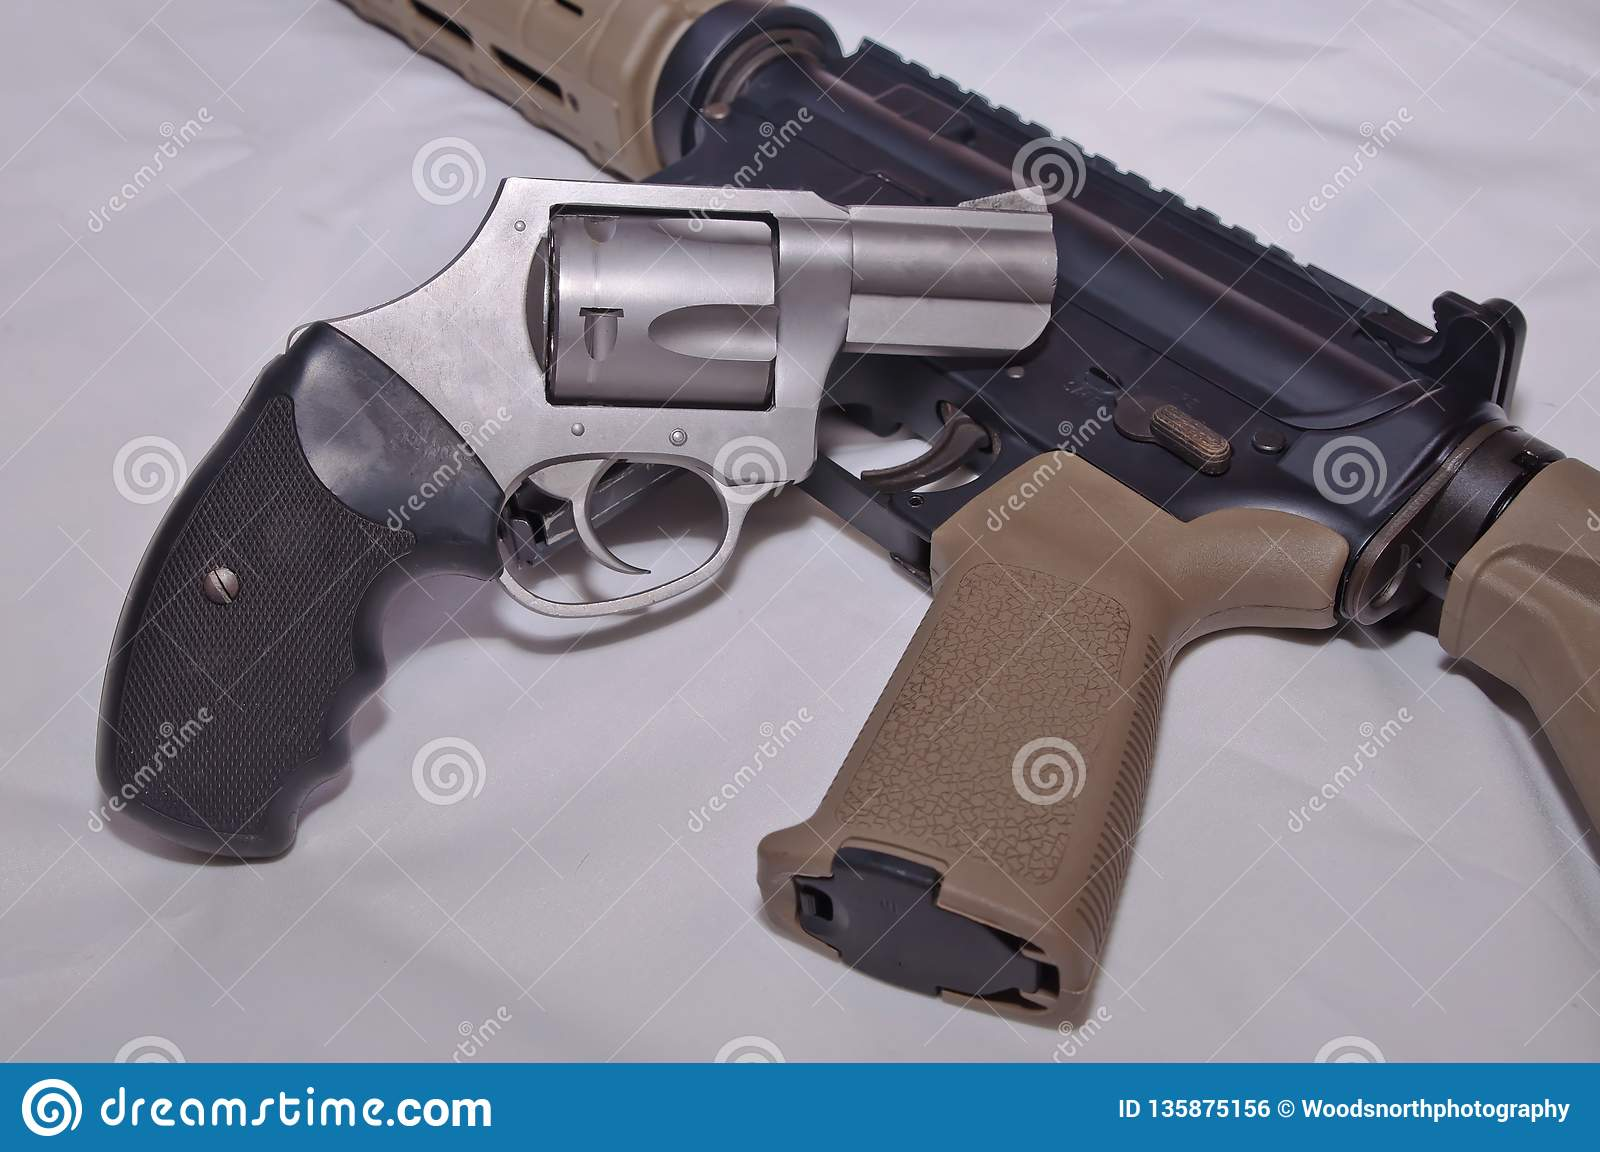 A Stainless Steel 357 Magnum Revolver With A Black Grip On Top Of A